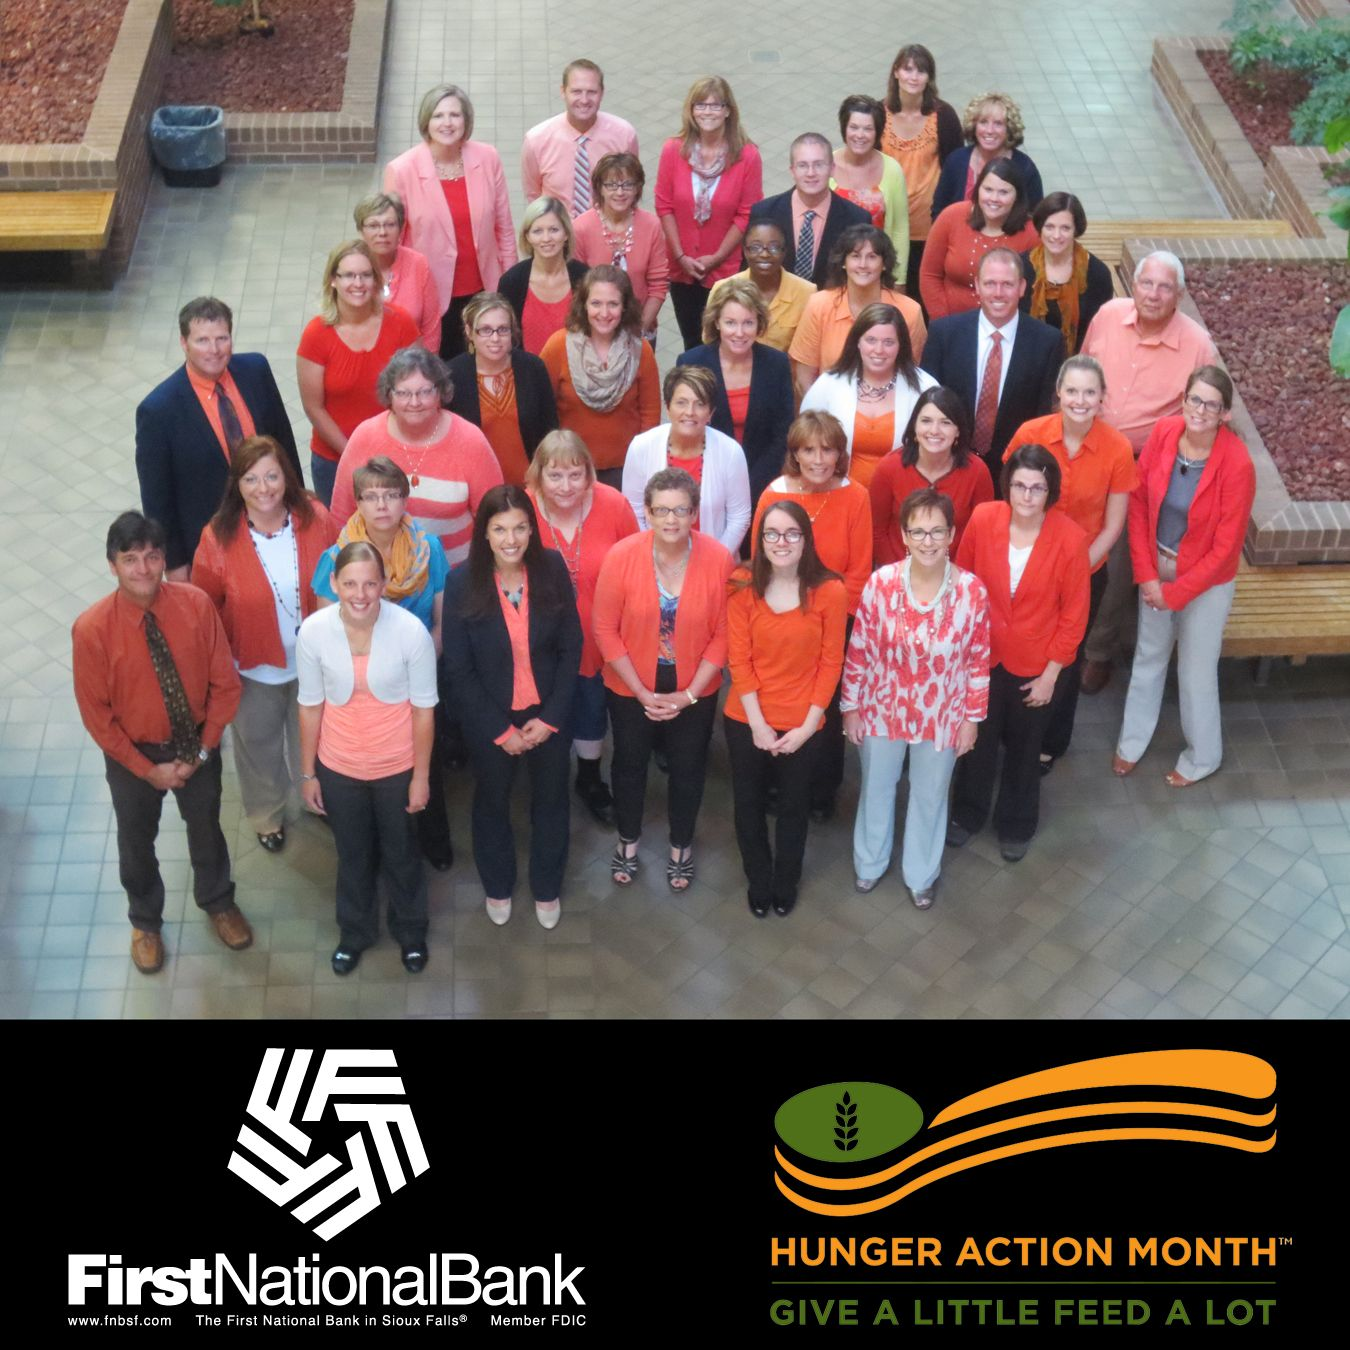 FNB employees have gone ORANGE in support of hunger awareness! #HungerActionMonth #FeedingAmerica